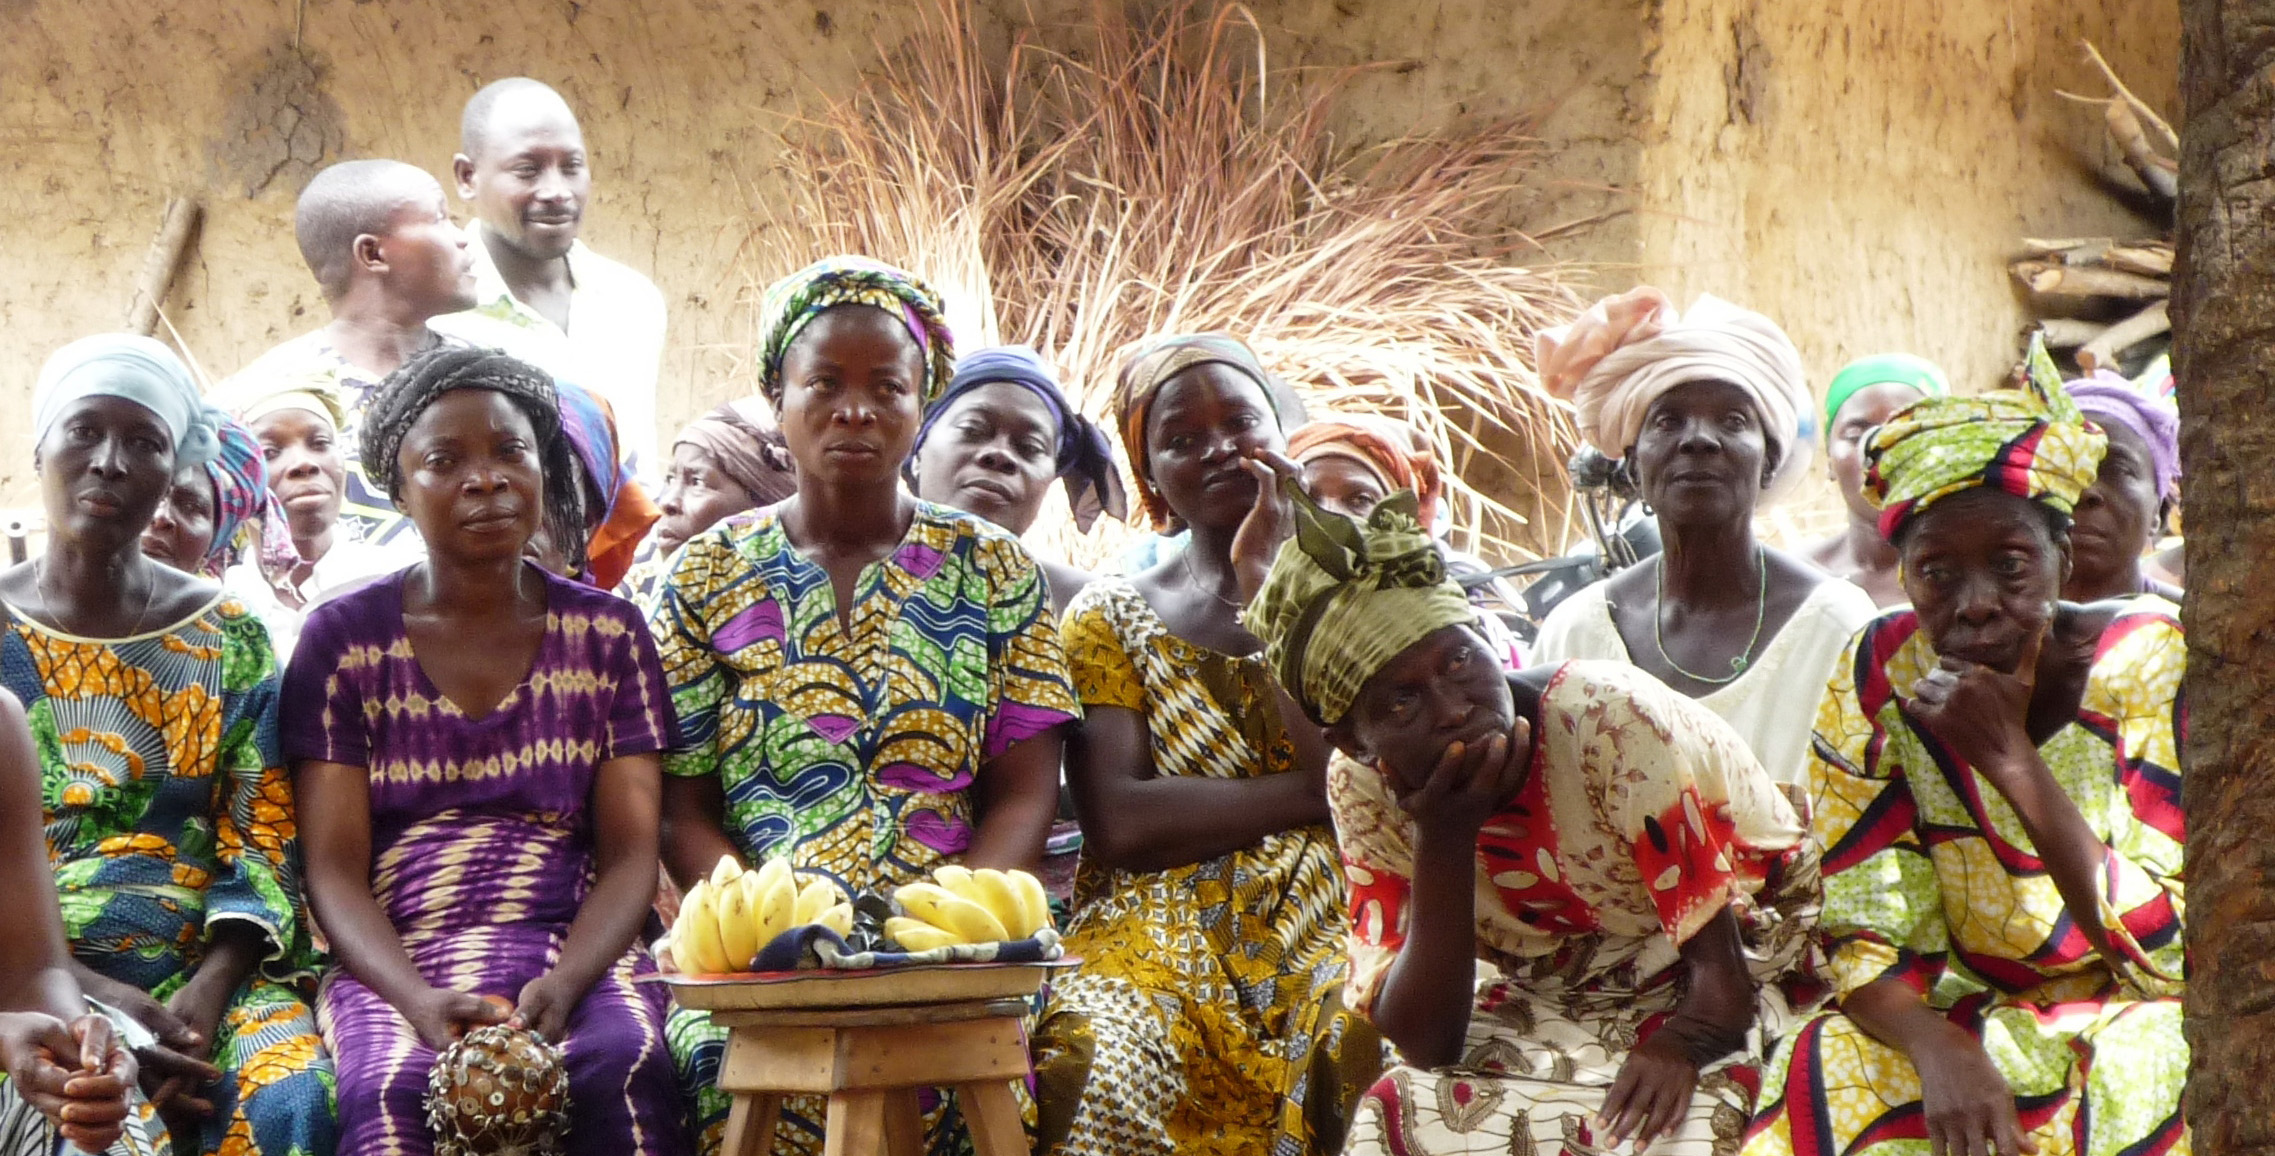 Women during a training session in Benin - by Rémi Kahane